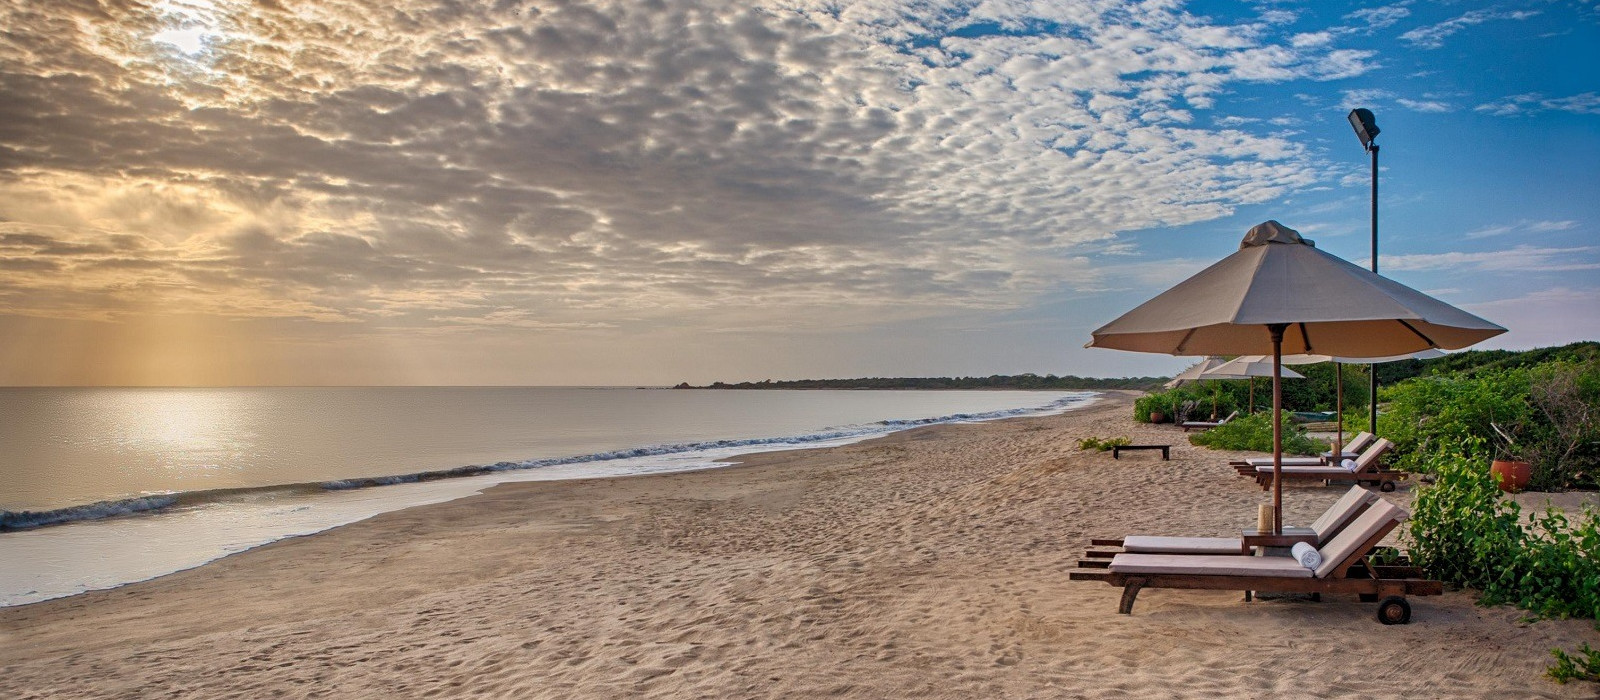 Hotel Jungle Beach by Uga Escapes Sri Lanka